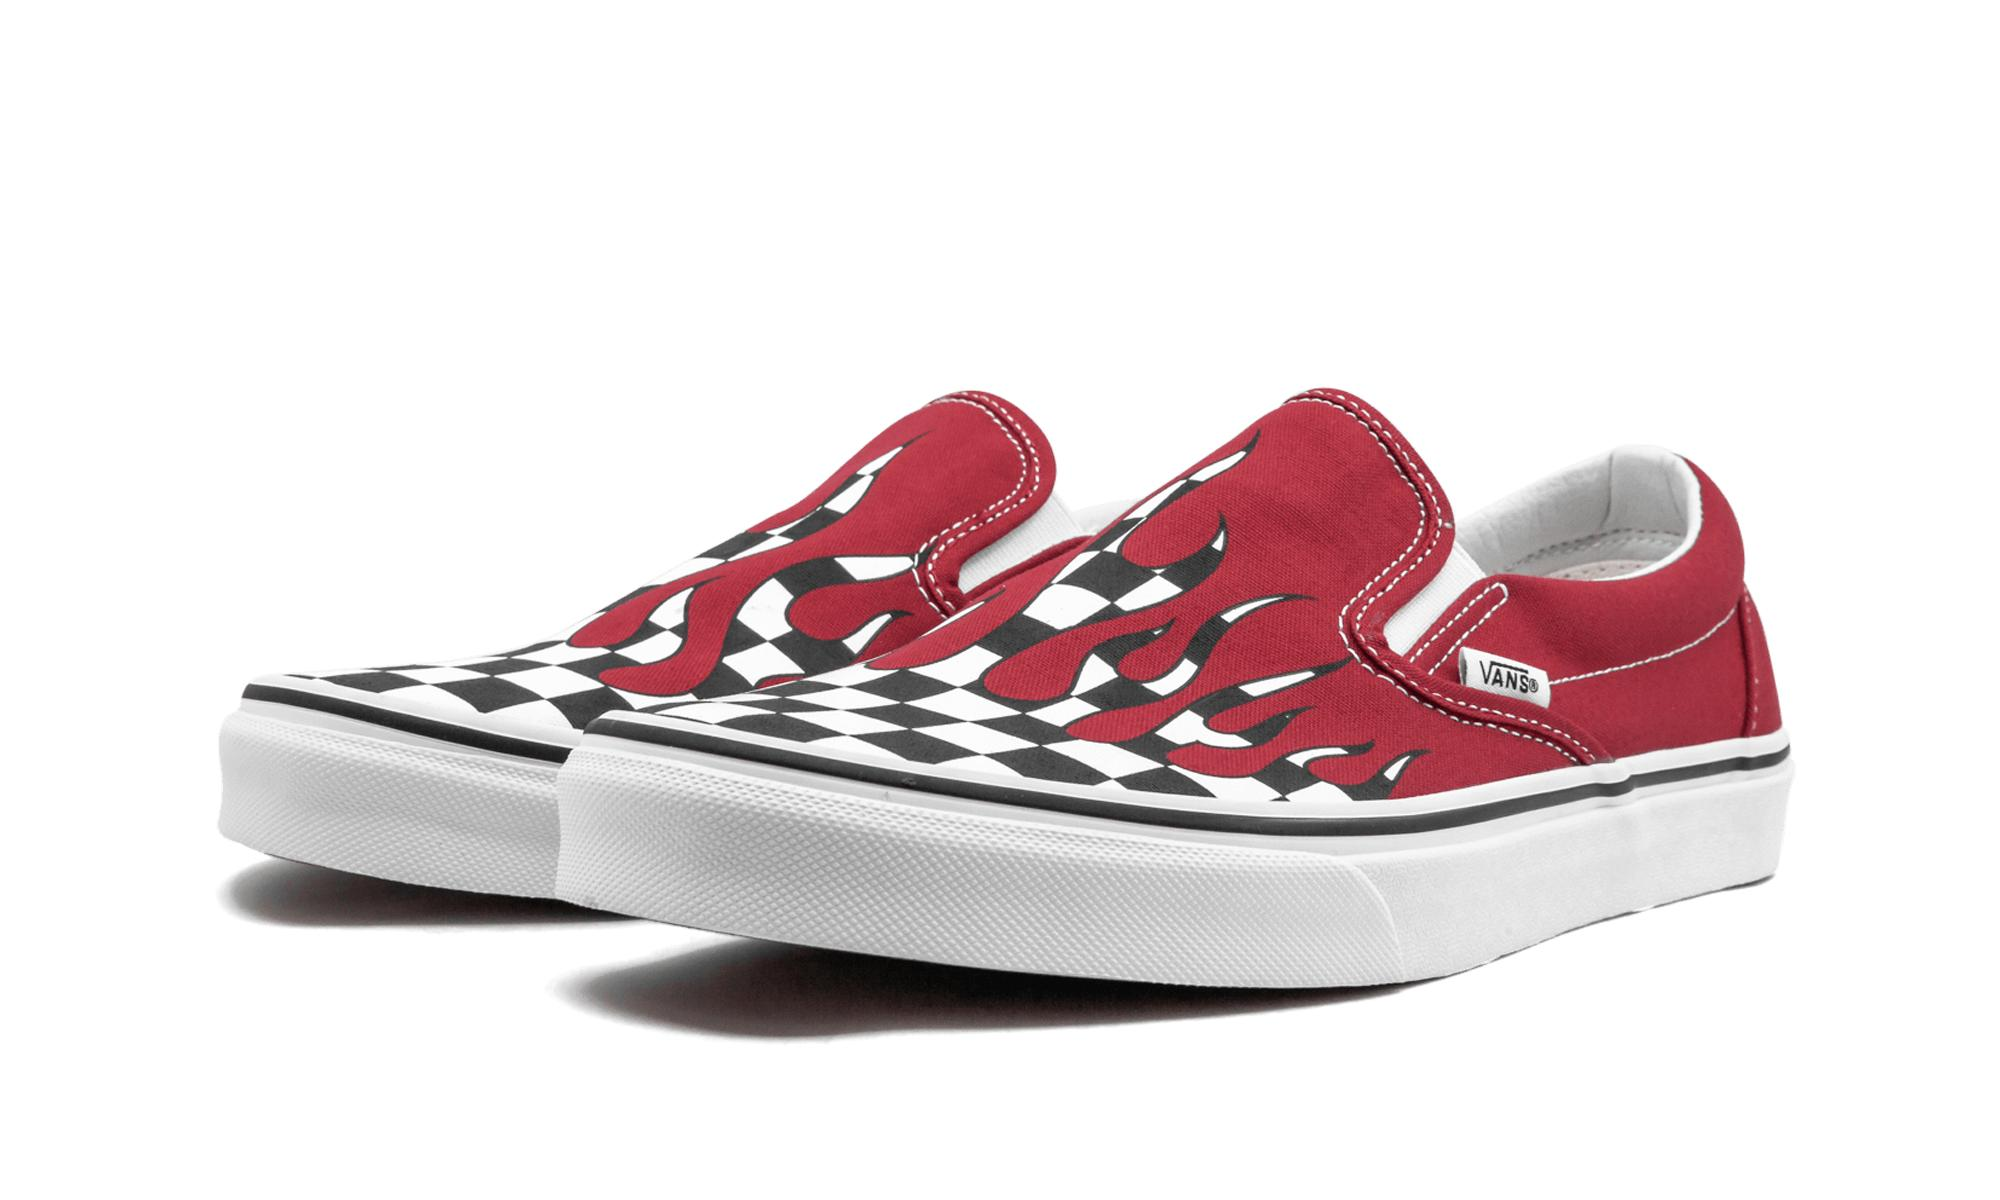 cdc337859c95 Lyst - Vans Classic Slip-on Checker Flame in Red for Men